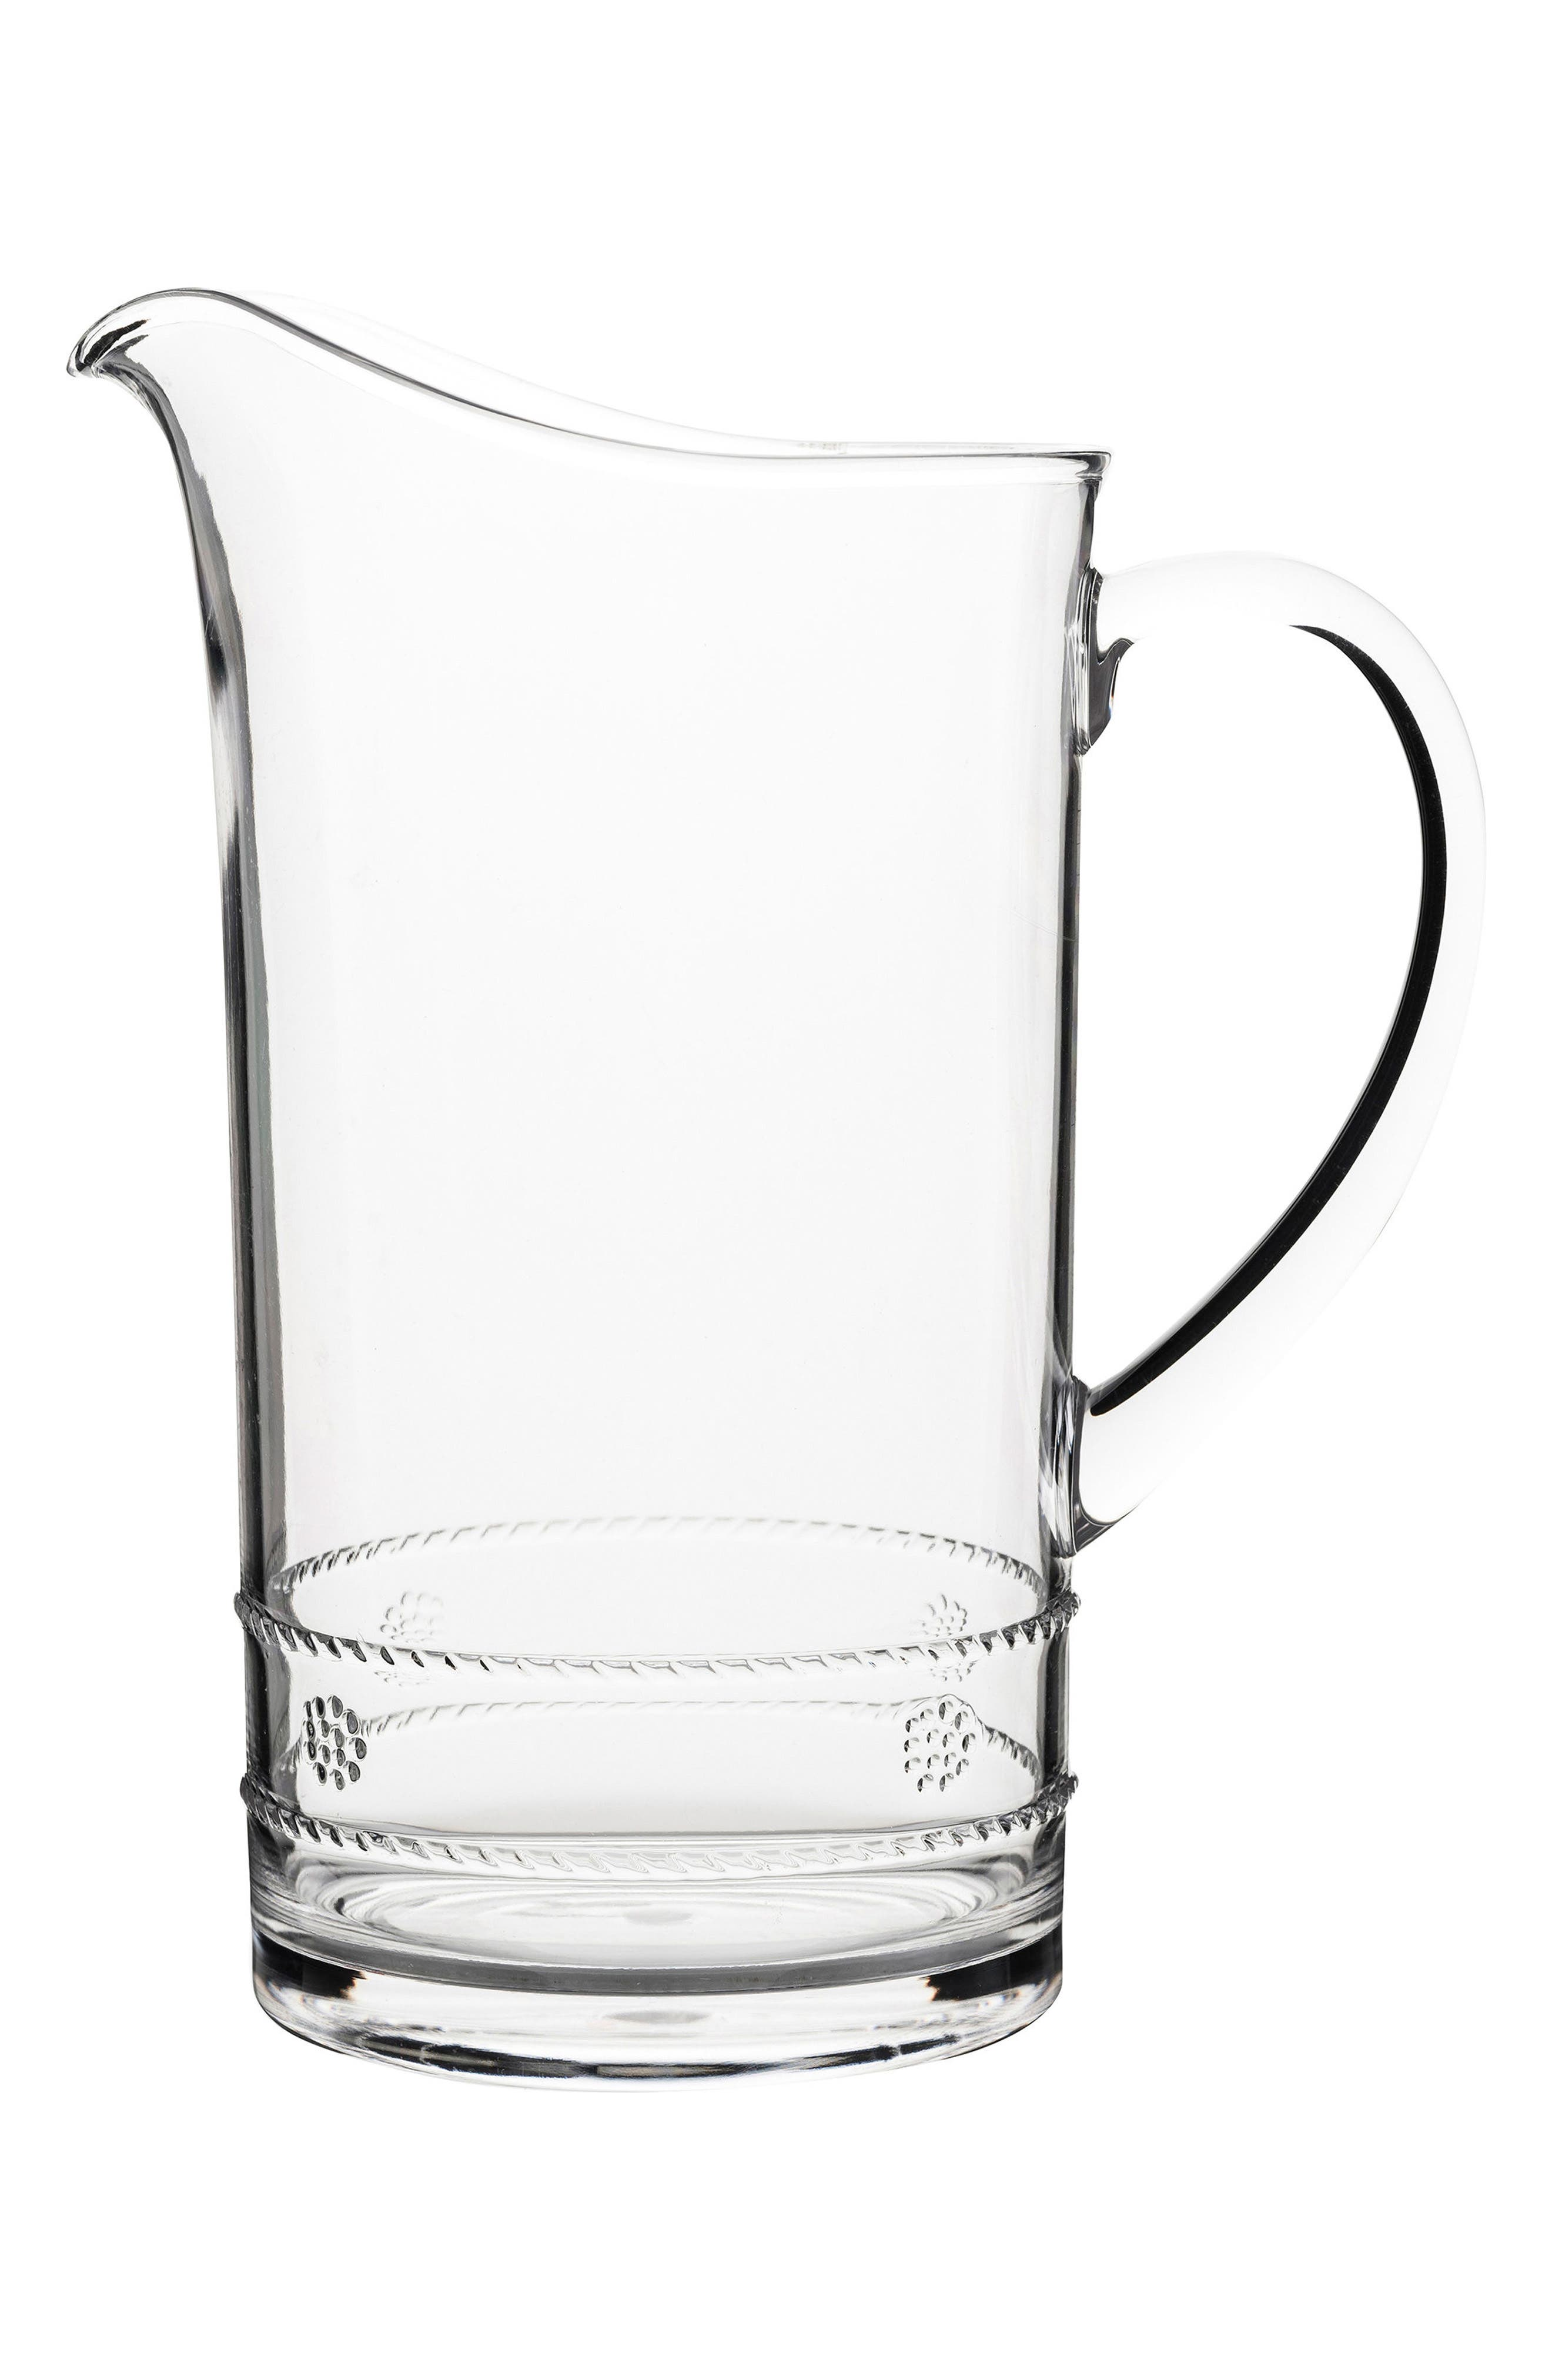 Isabella Acrylic Pitcher,                         Main,                         color, Clear